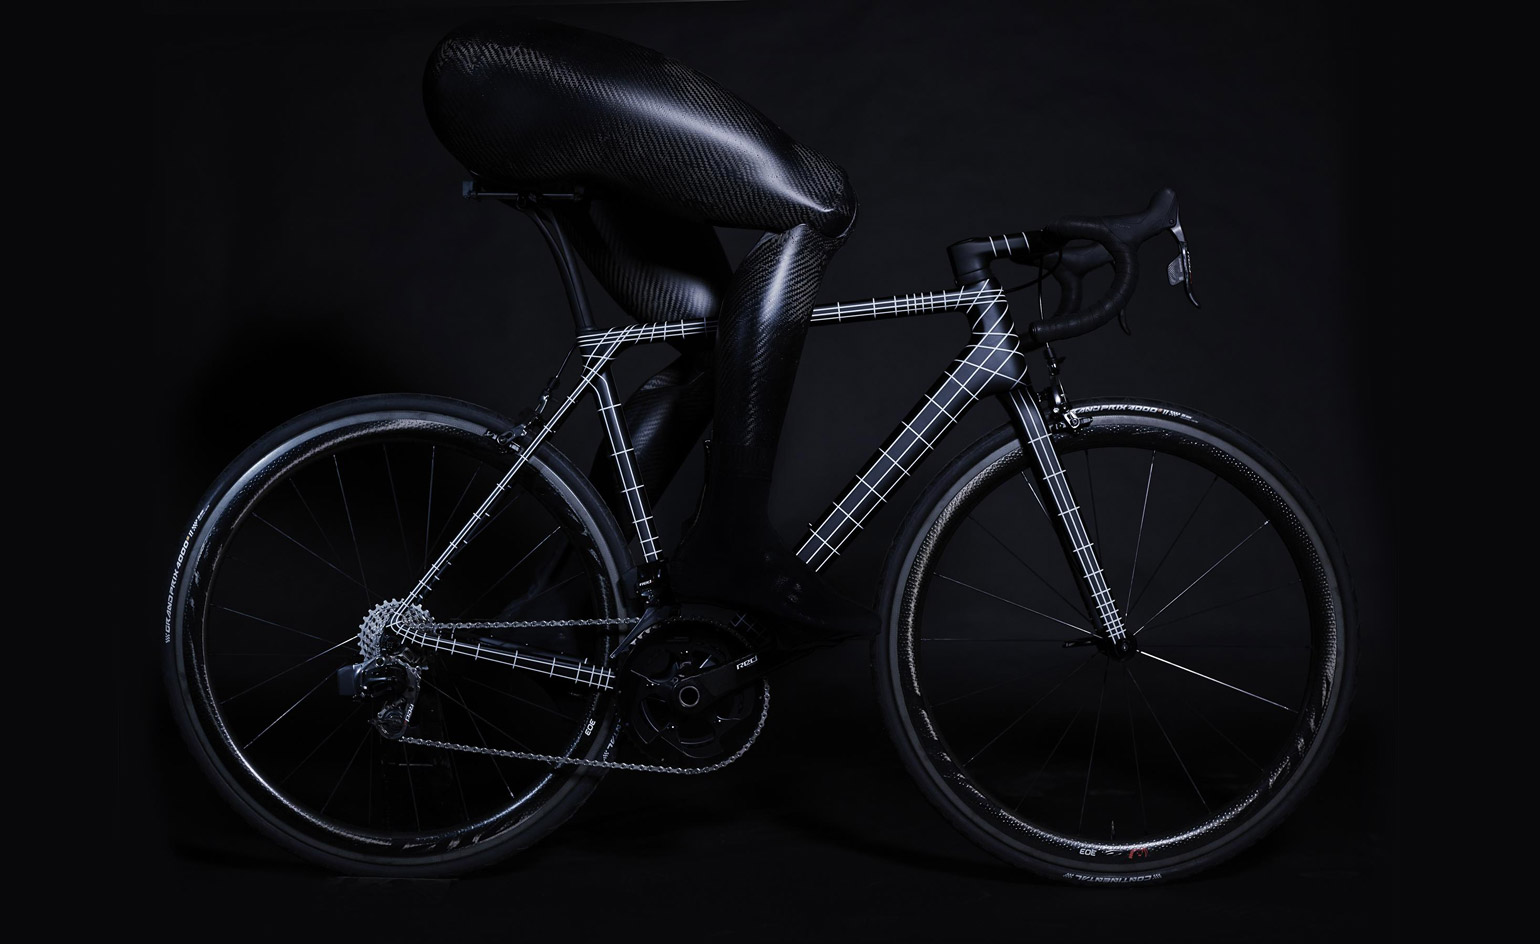 Cycling wallpapers hd